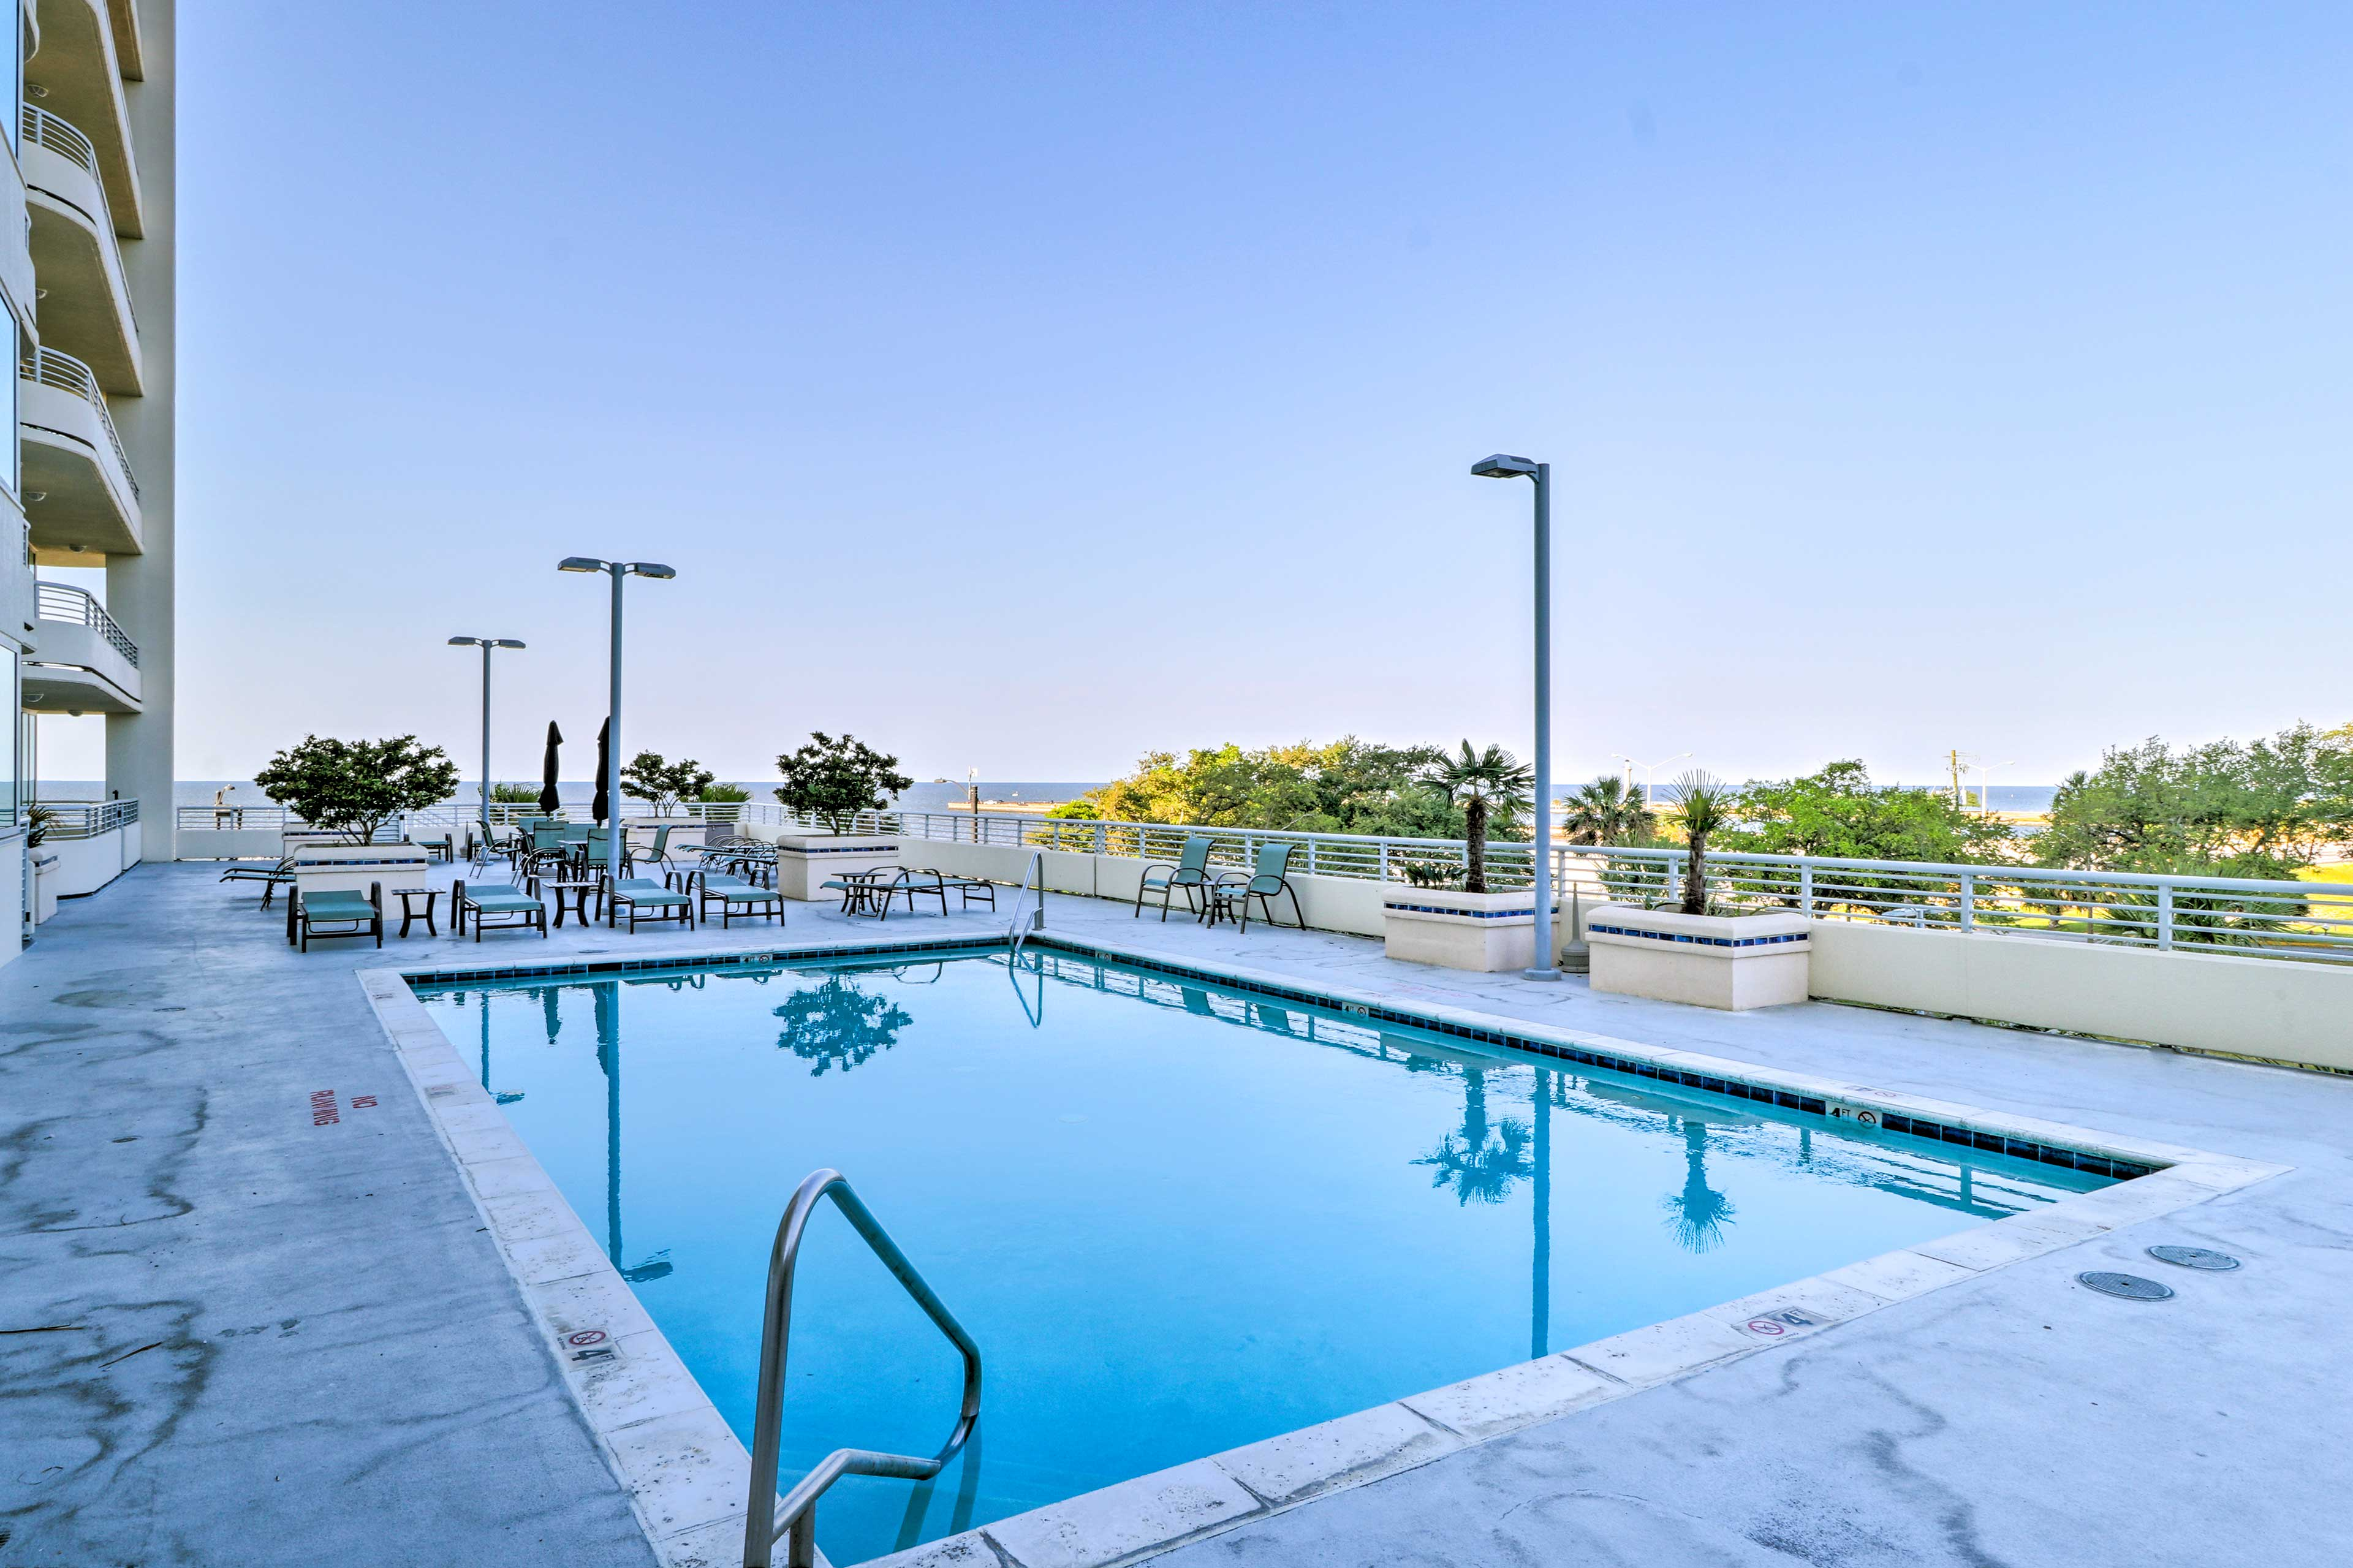 Dive into relaxation at the community pool!